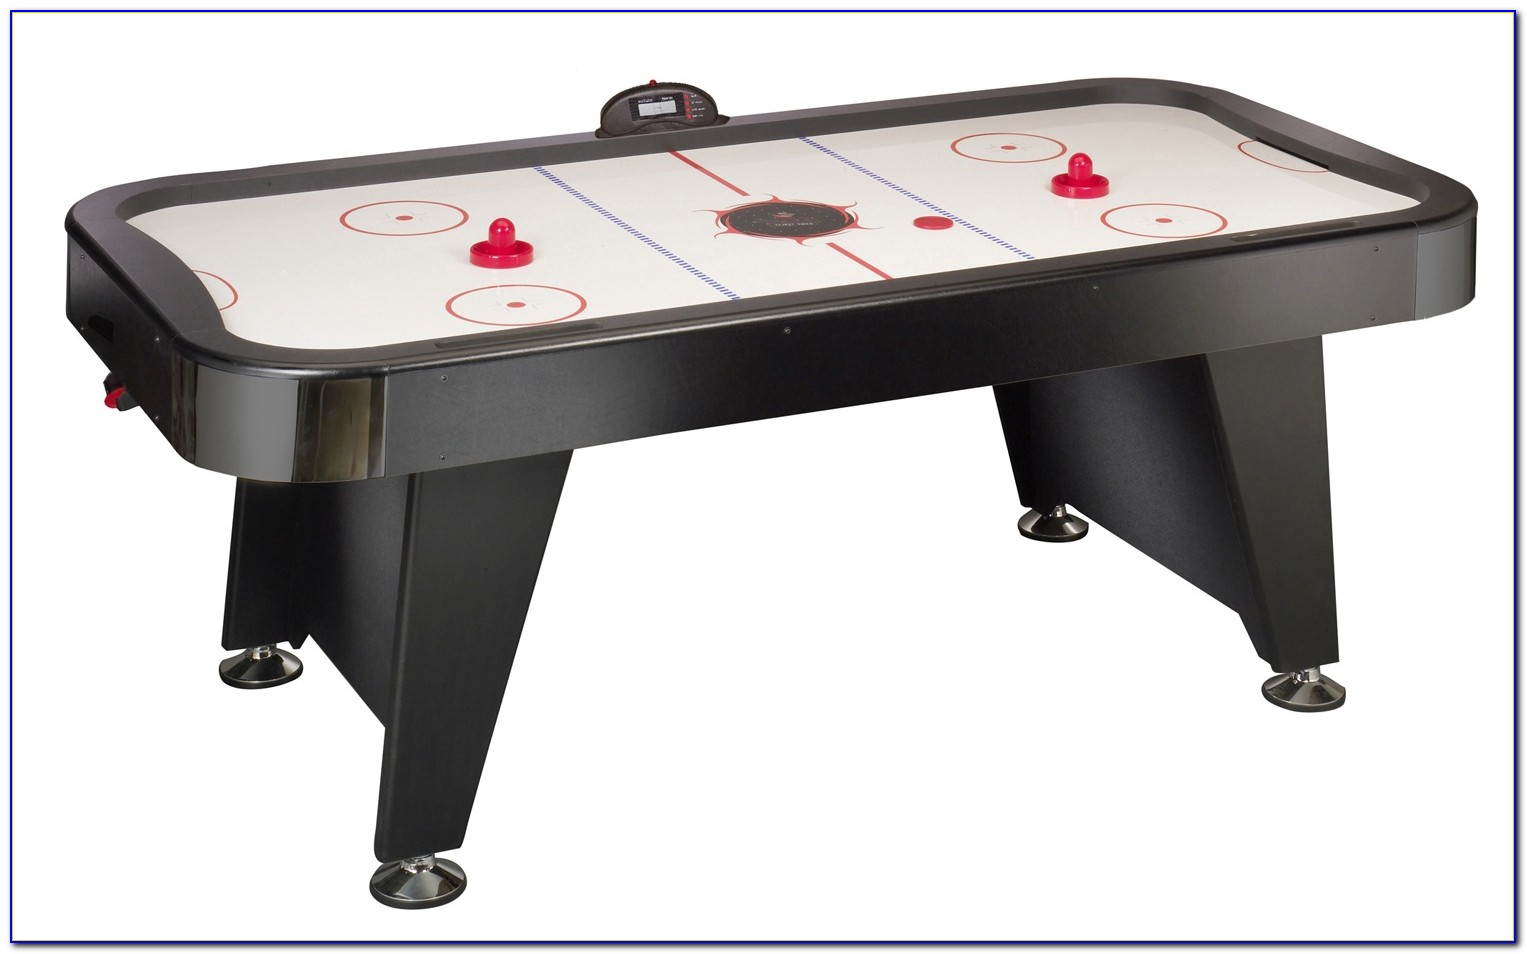 Tabletop Air Hockey Just For Fun